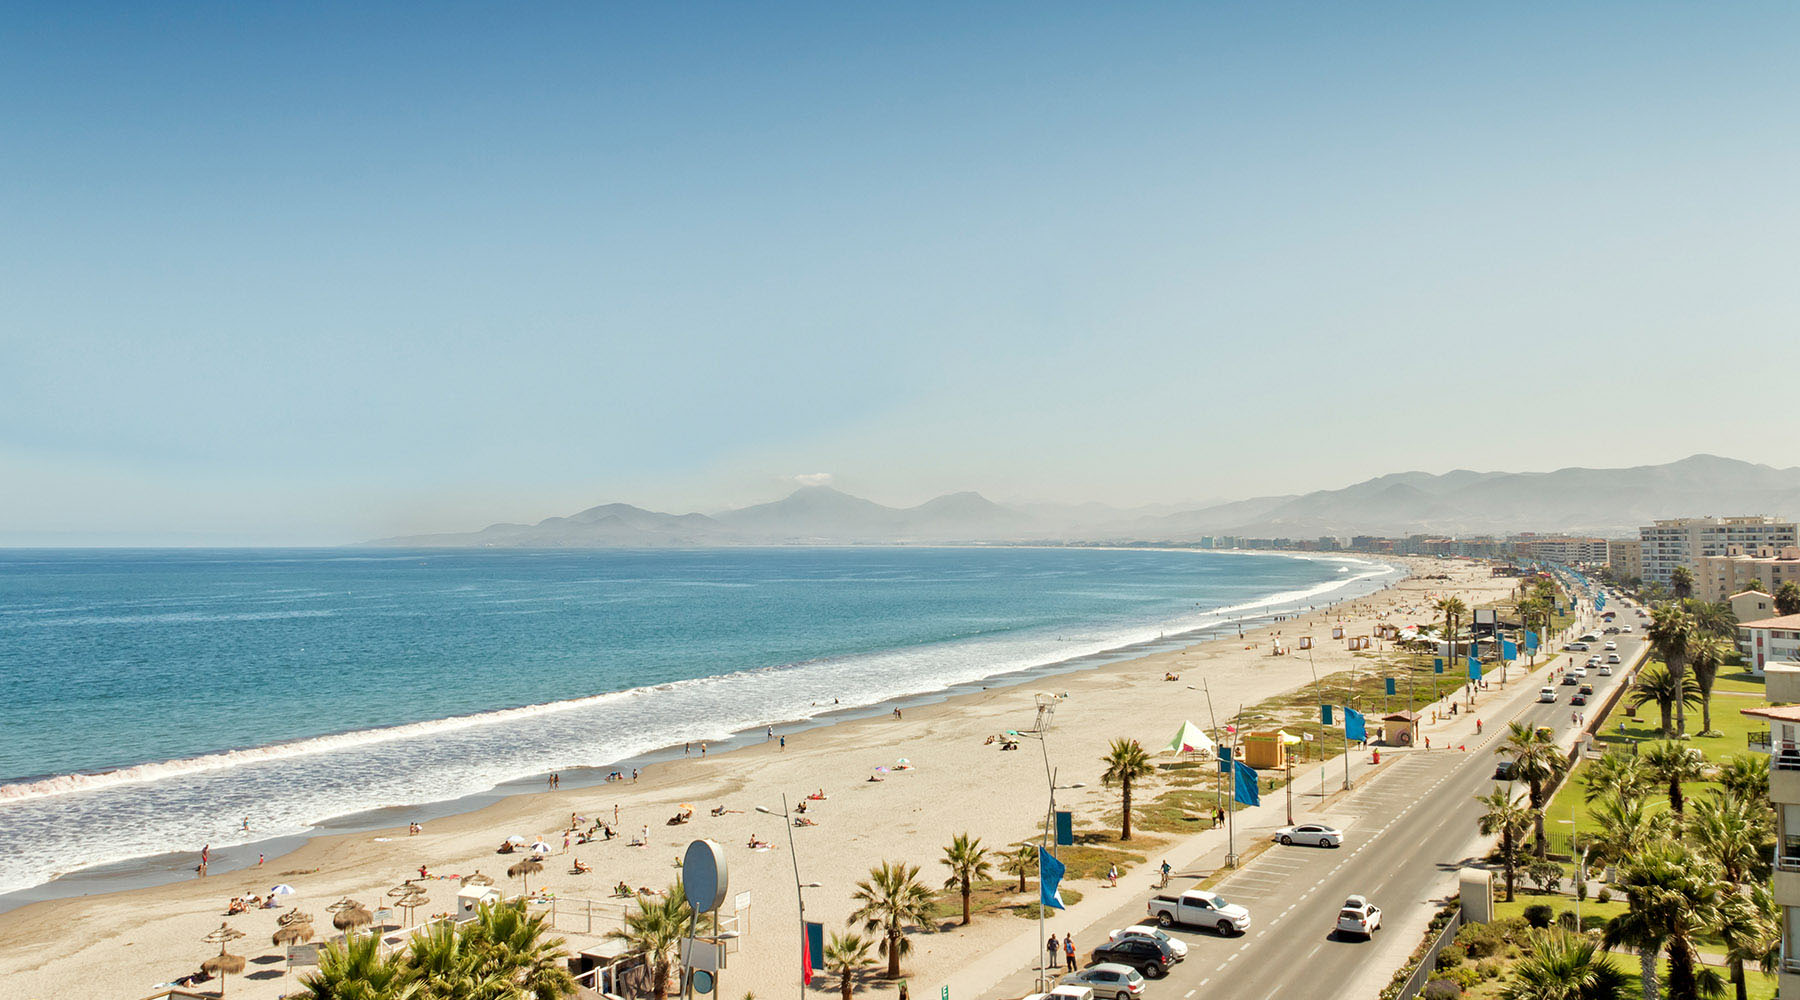 Luxury voyages to La Serena (Coquimbo), Chile